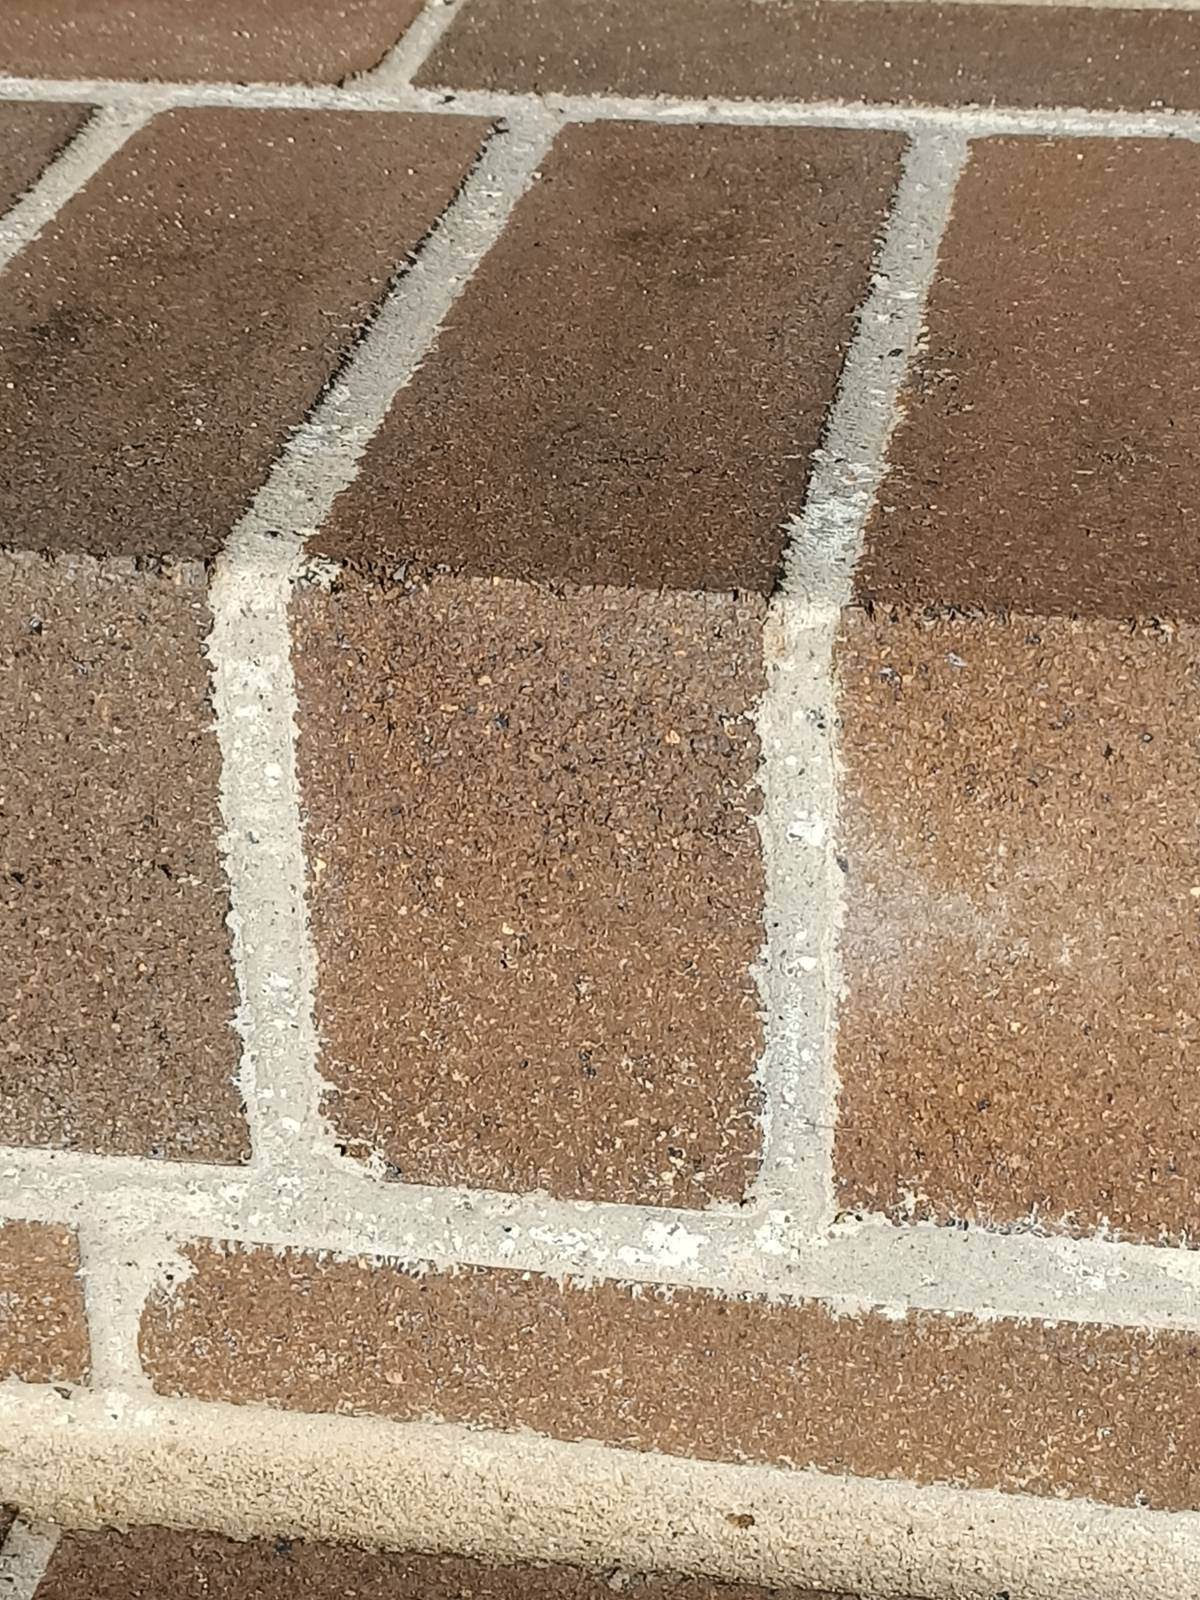 Mortar stains?